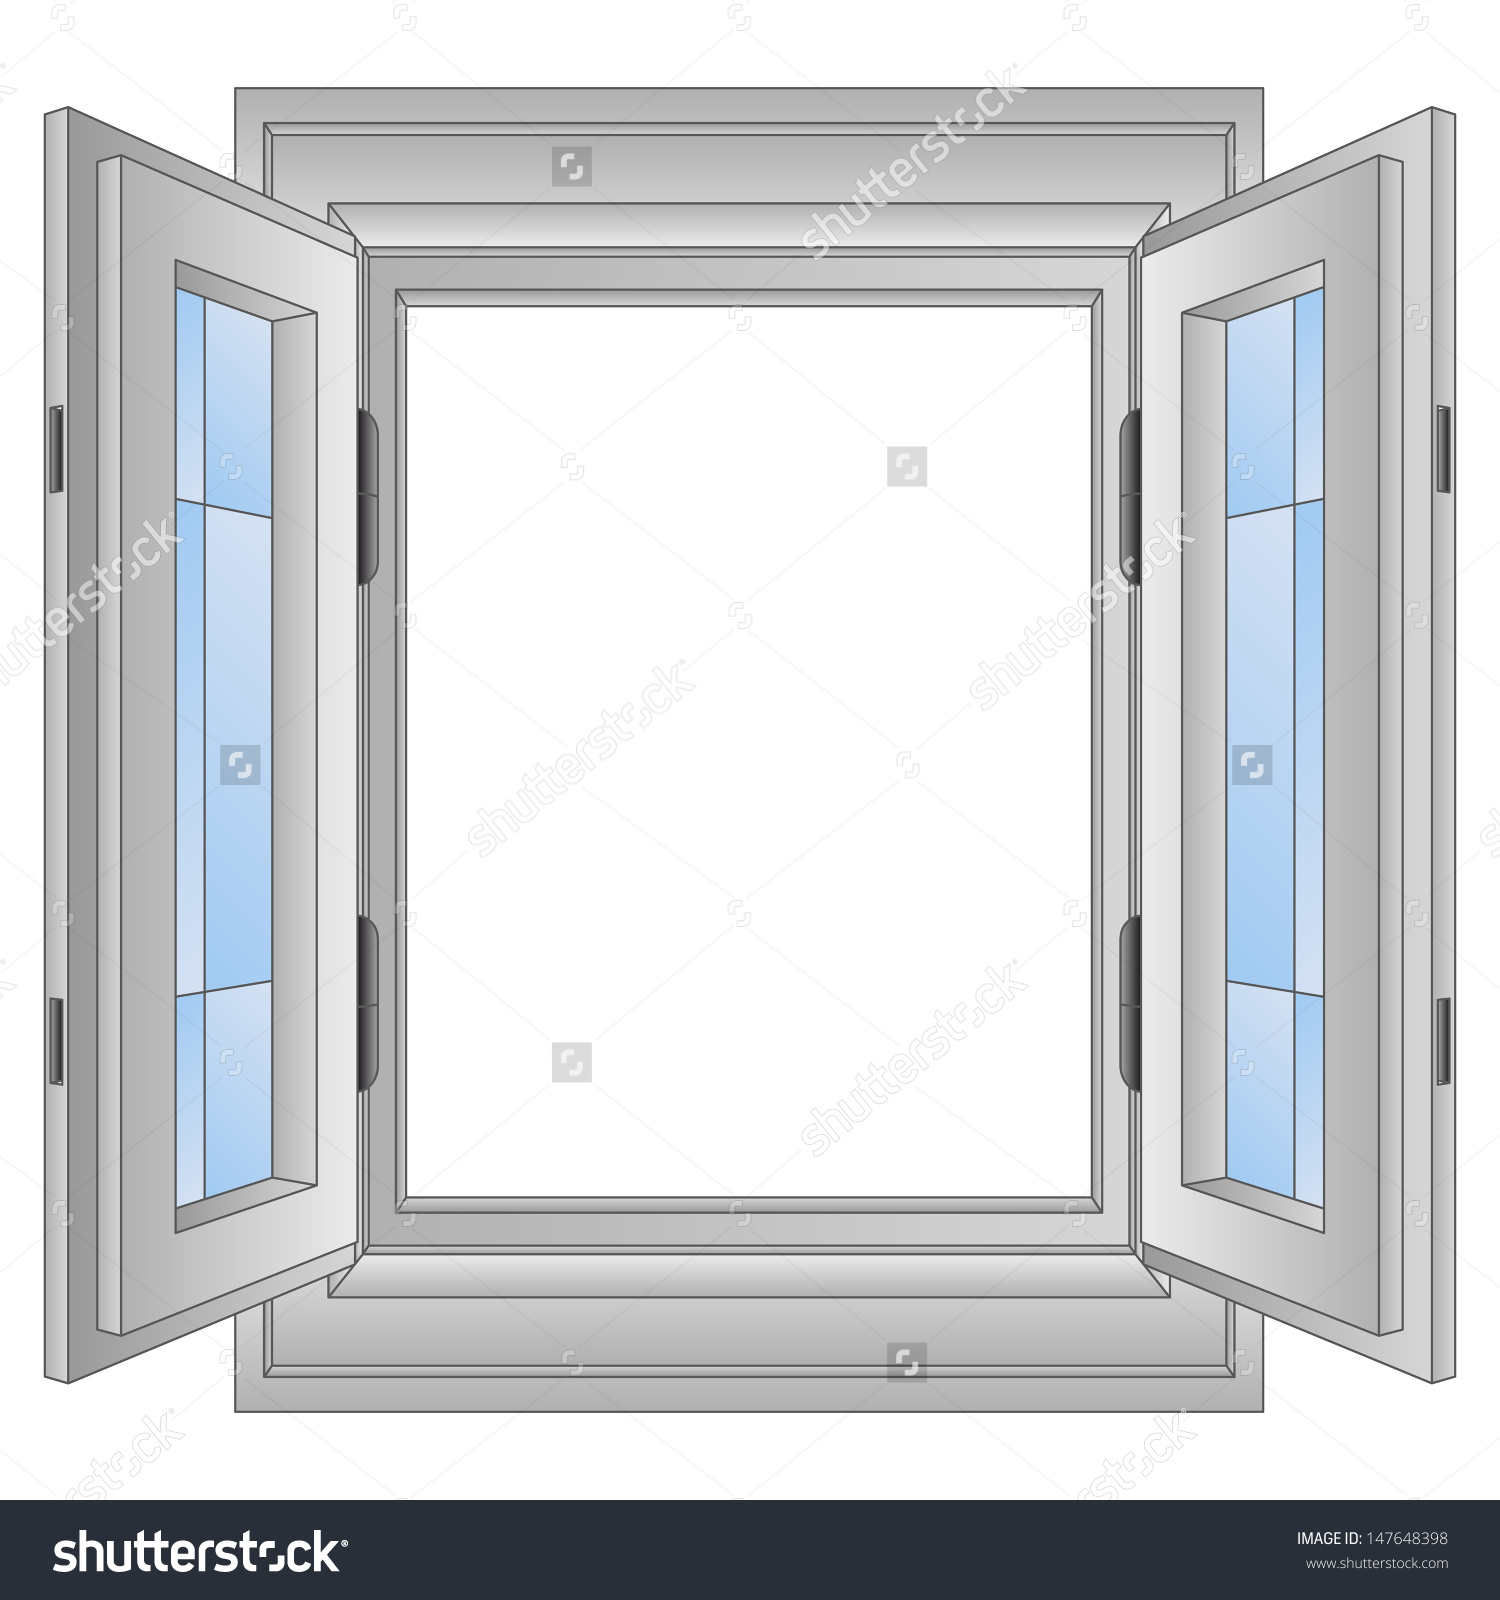 Window frames clipart clipground for Window design clipart